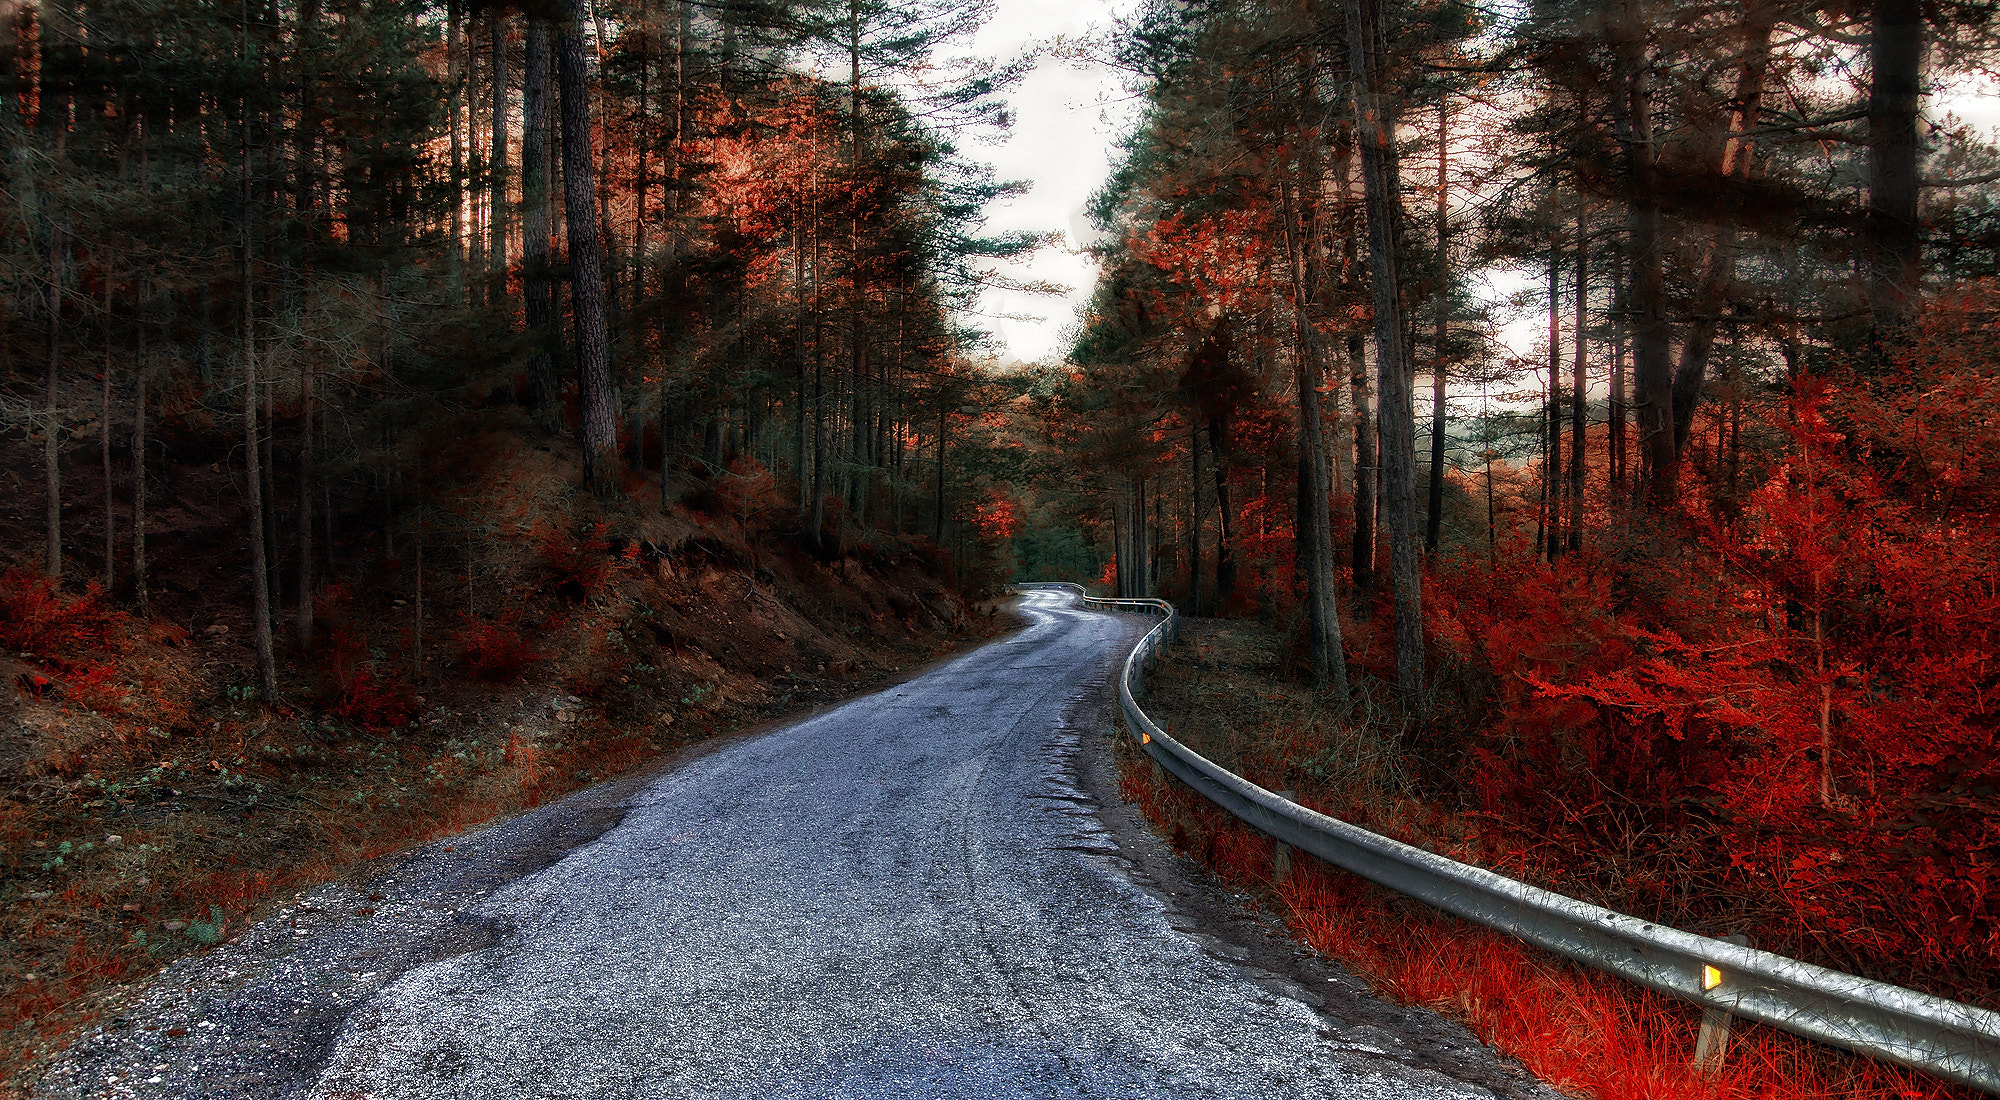 Photograph The Road by Alfon No on 500px